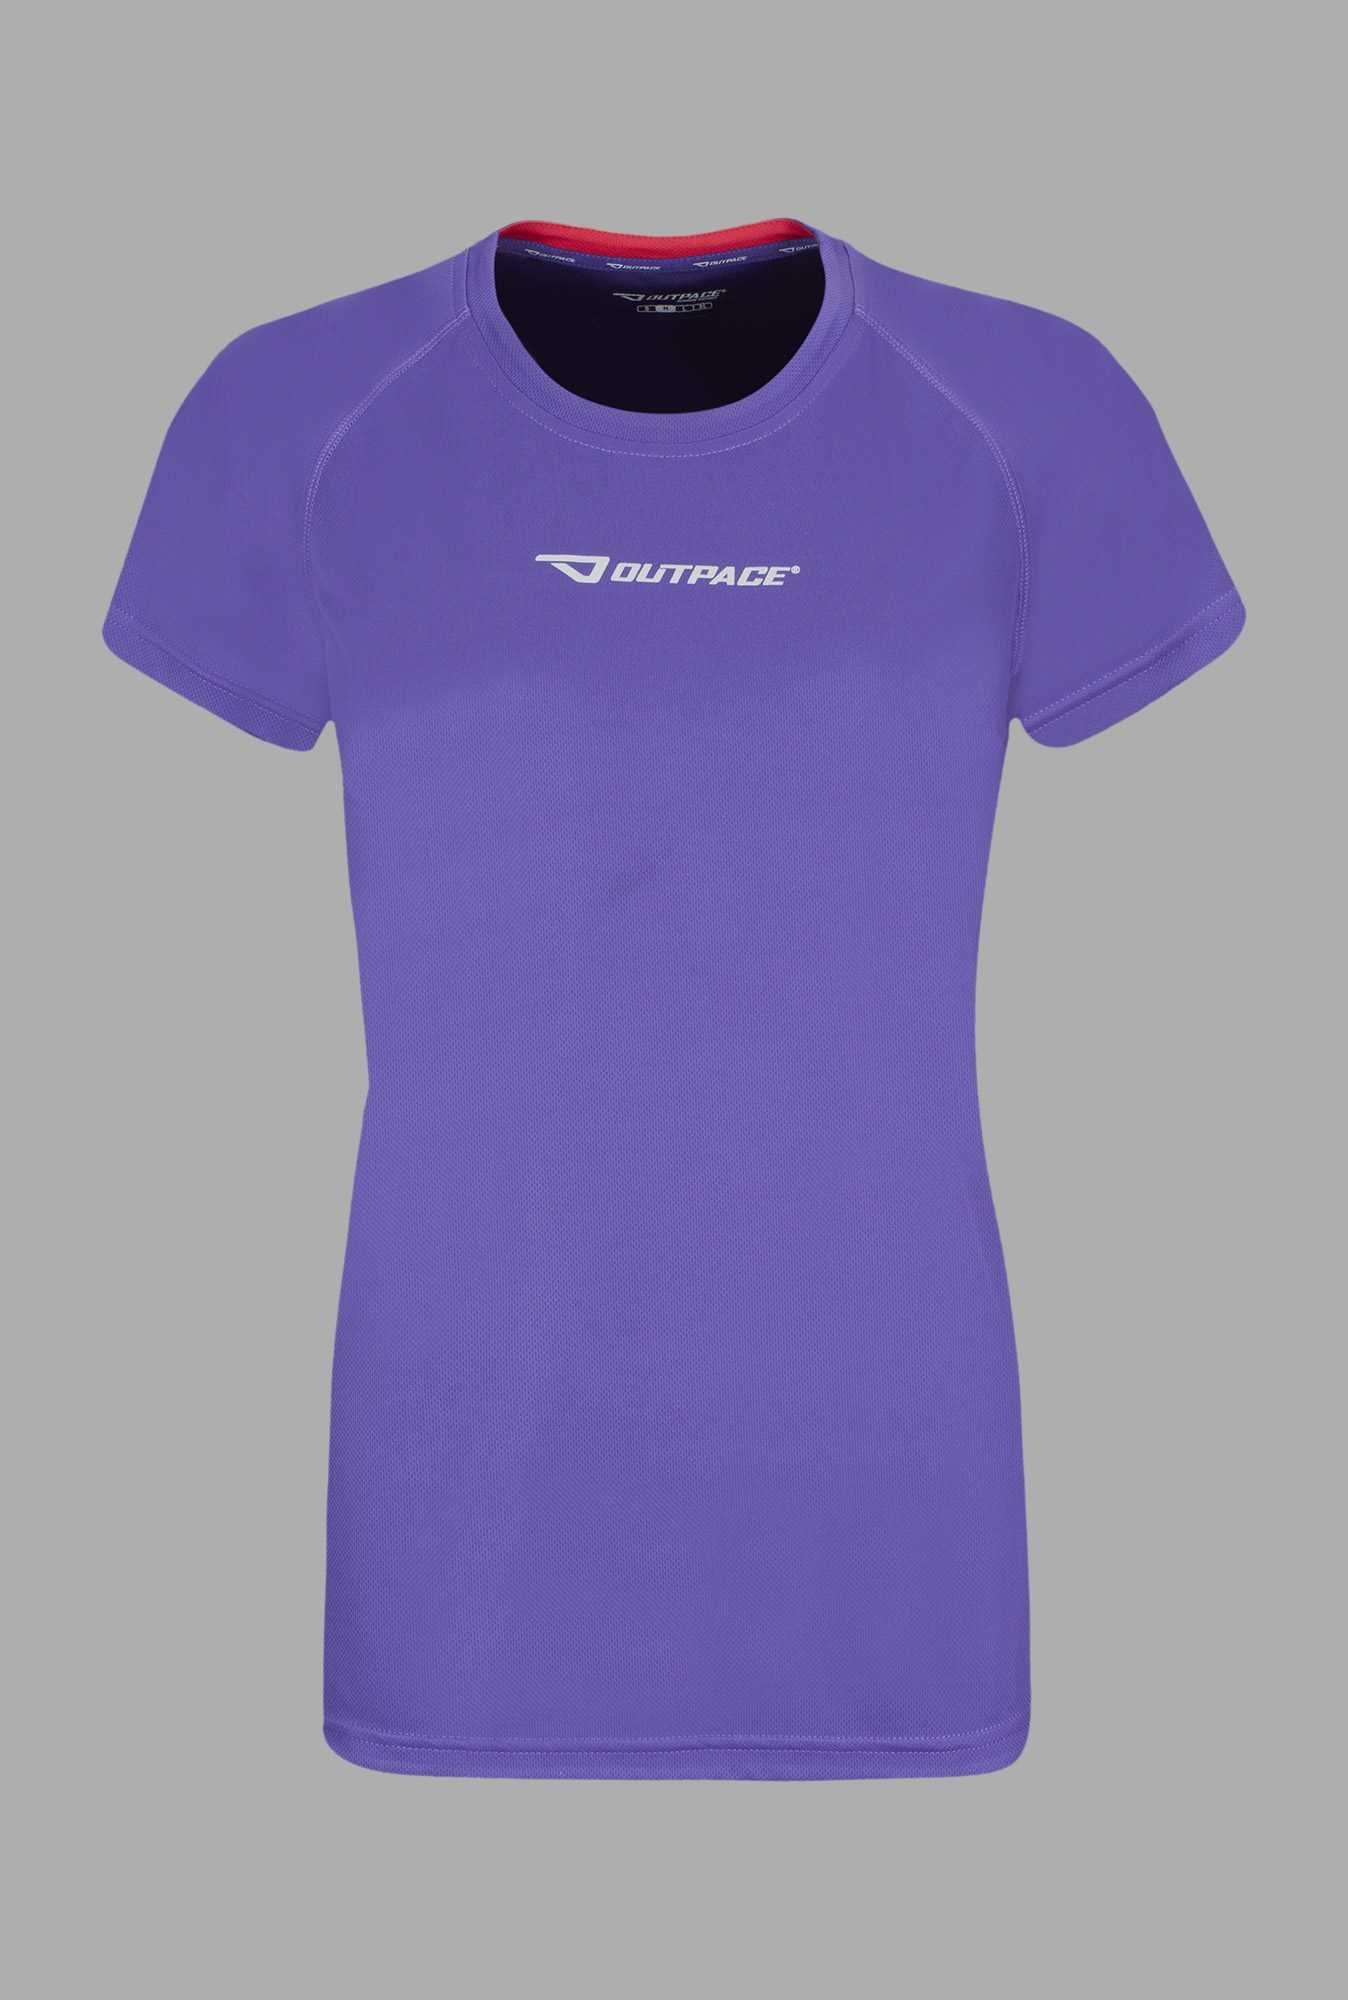 Outpace Purple Running T Shirt